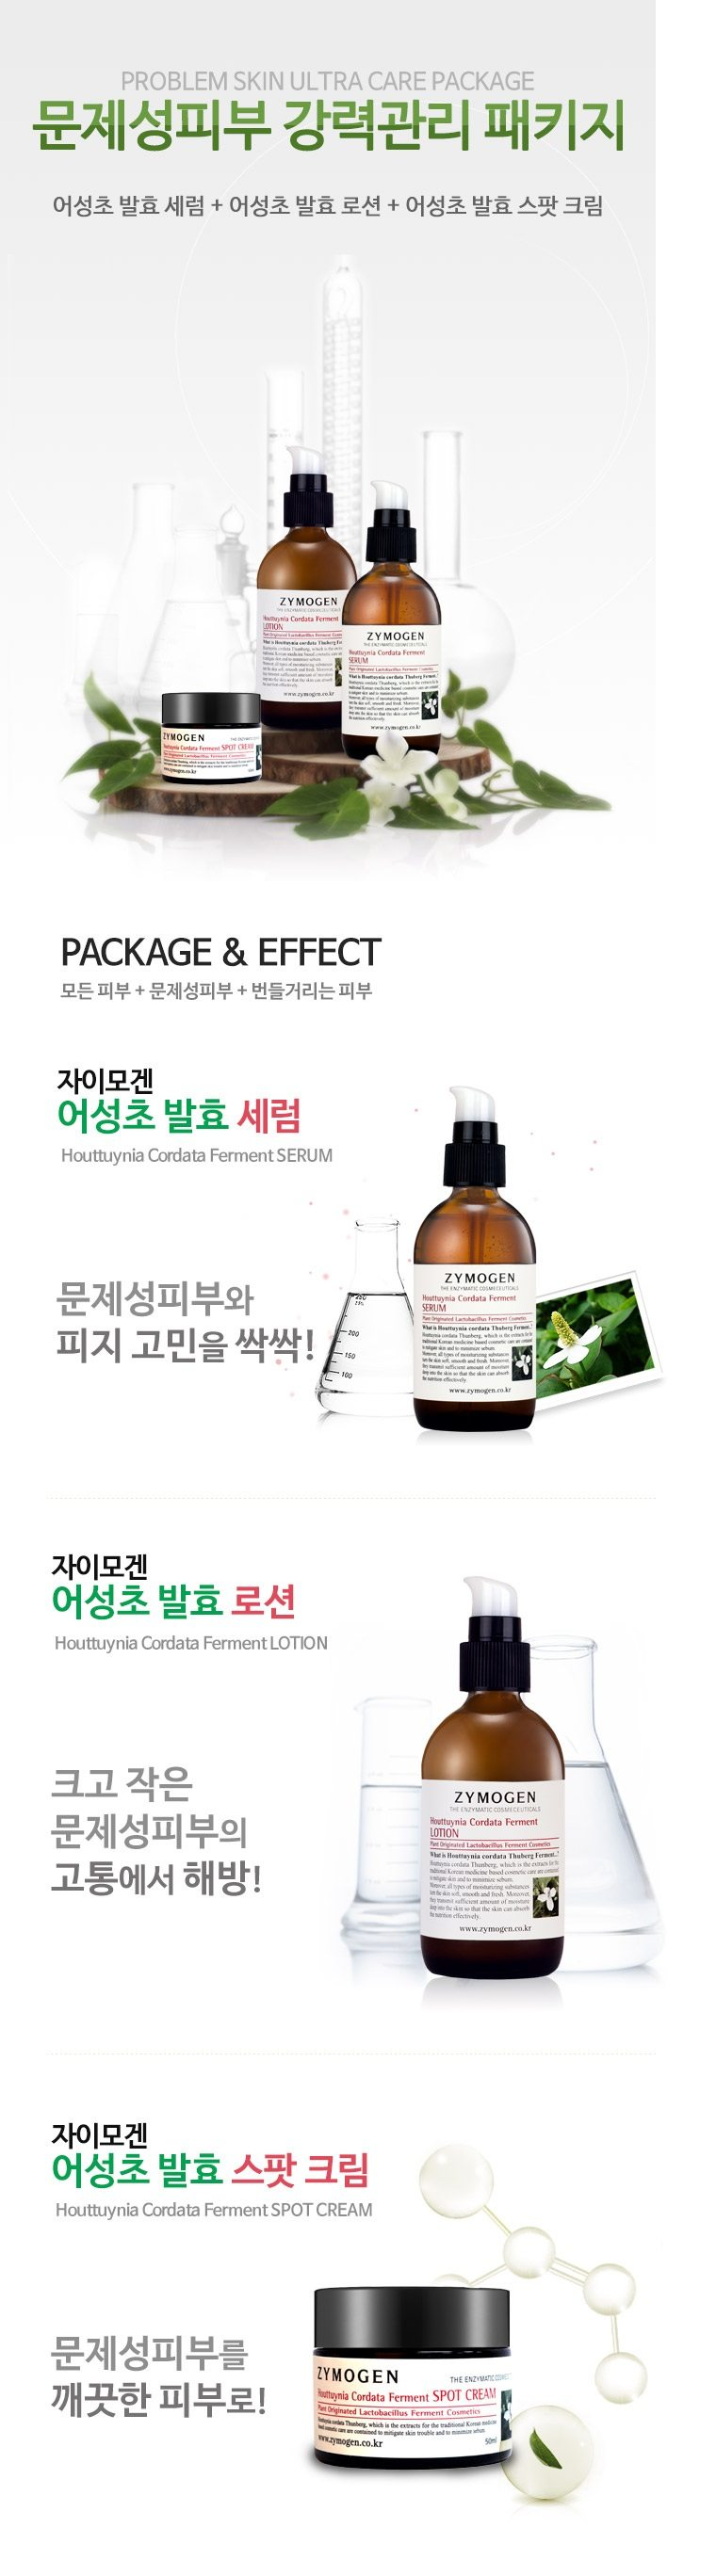 Zymogen Problem Skin Ultra Care Package korean cosmetic skincar product online shop malaysia brazil macau1